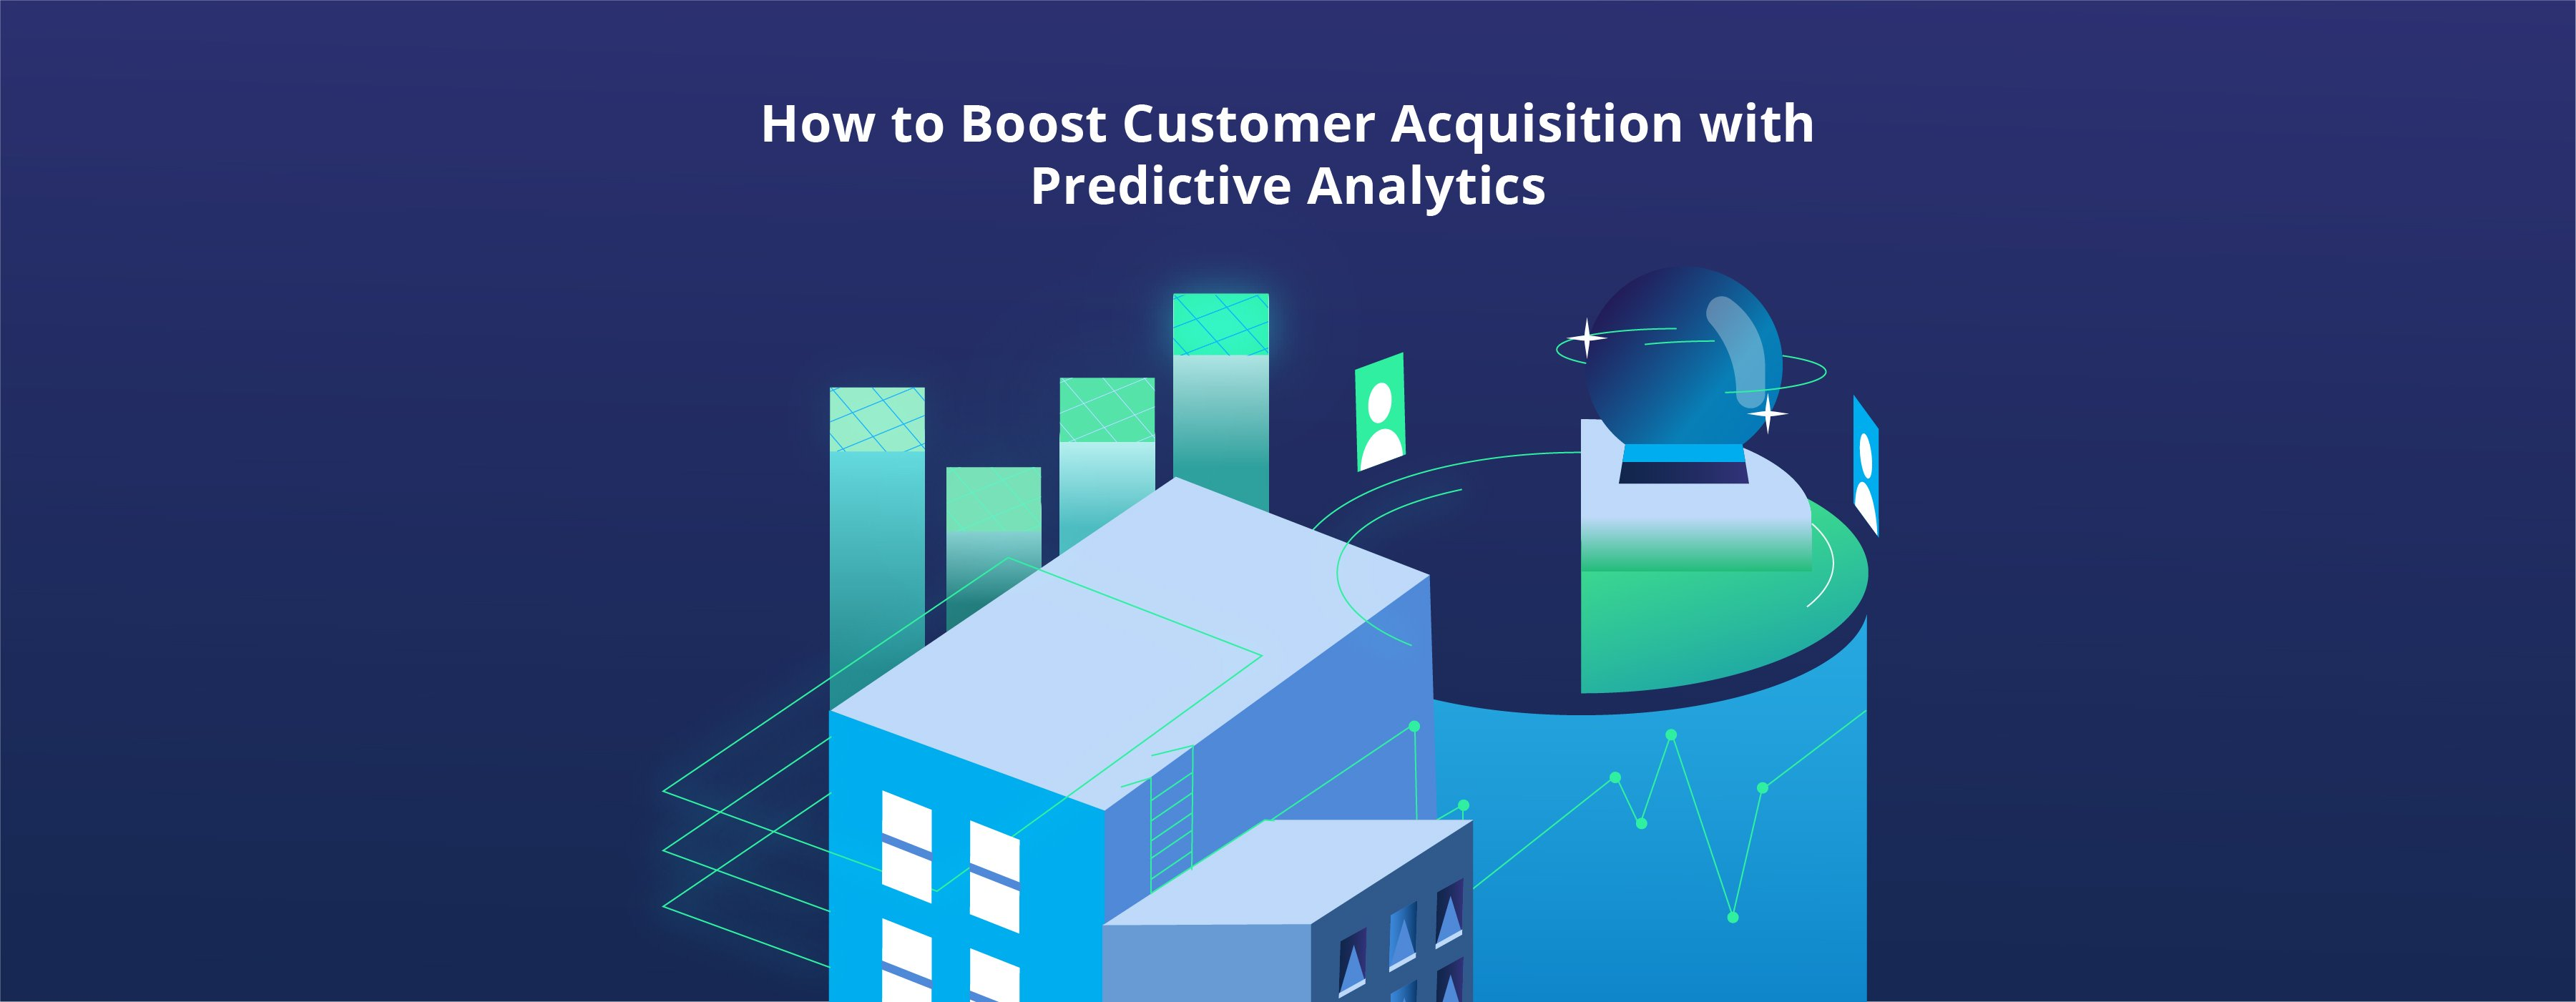 DataTree Insights: How to Boost Customer Acquisition with Predictive Analytics